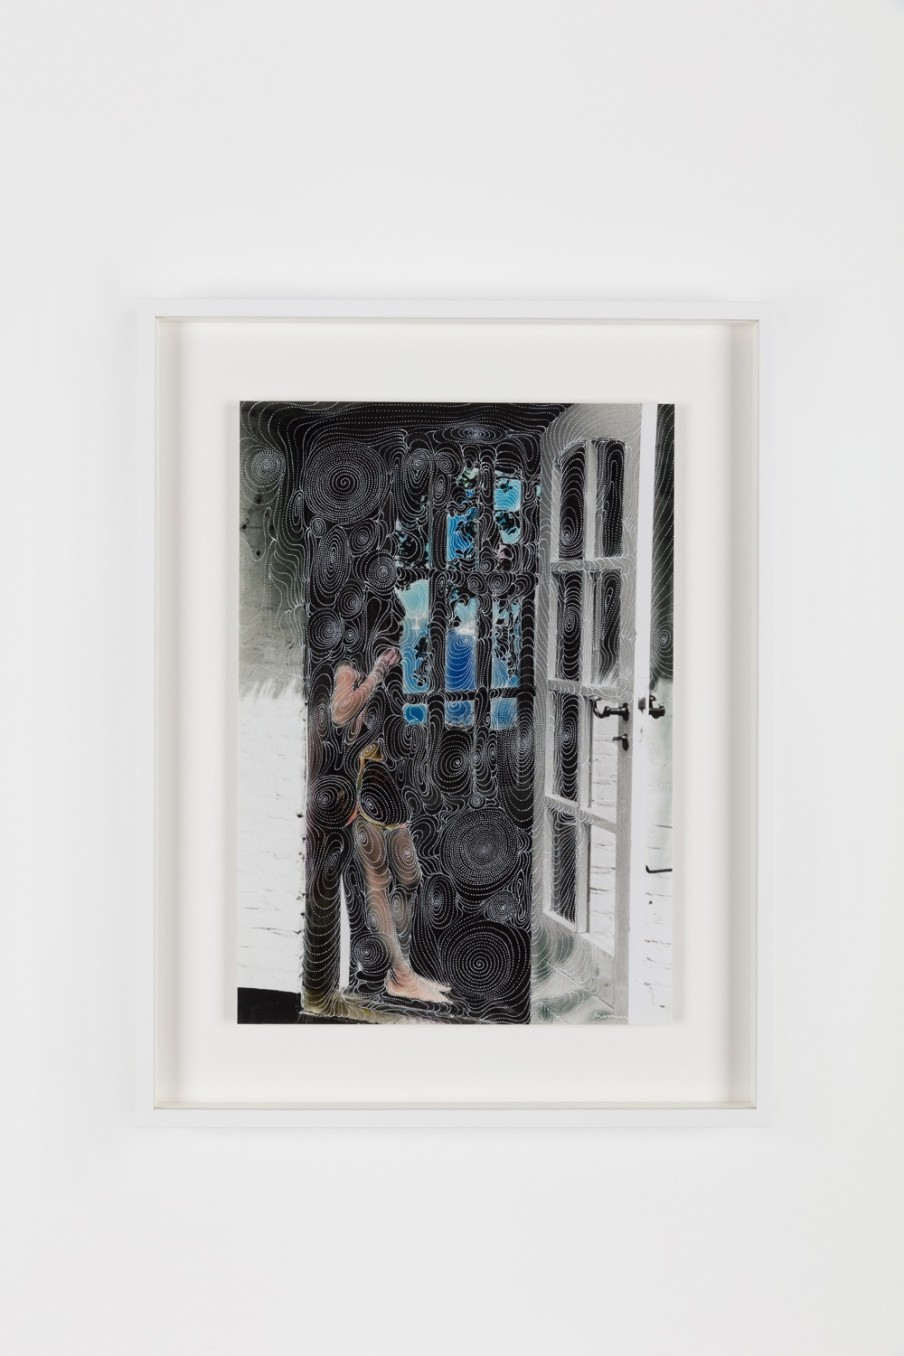 Sebastiaan Bremer, Inside Silver Step, 2018, Archival inkjet pigment print on resin coated paper with hand additions in pigment pen and photo retouch dye, 34.3 x 24.1 cm, 13 1/2 x 9 1/2 in, Framed: 45.5 x 35.1 x 3.7 cm, 17 7/8 x 13 7/8 x 1 1/2 in